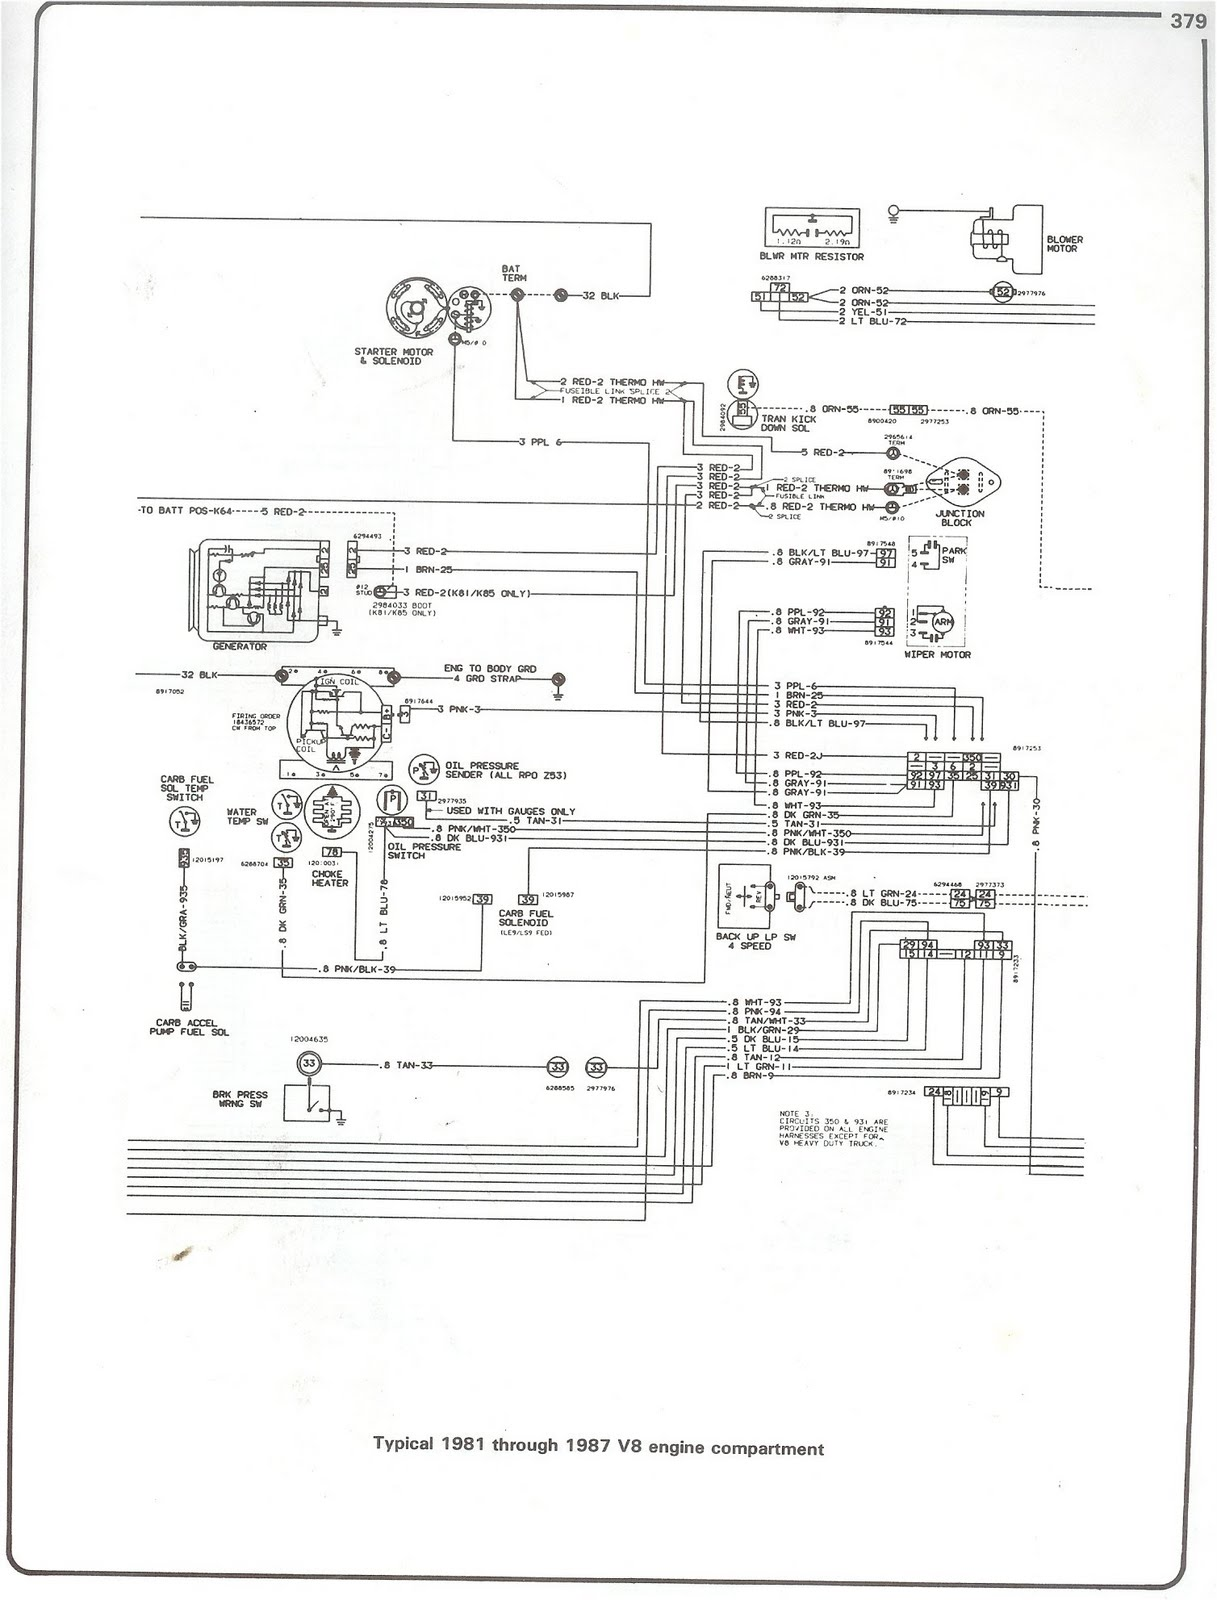 81 87_chevy_truck_V8_engine repair manuals toyota pickup 1981 wiring diagrams readingrat net 1982 chevy truck engine wiring diagram at fashall.co